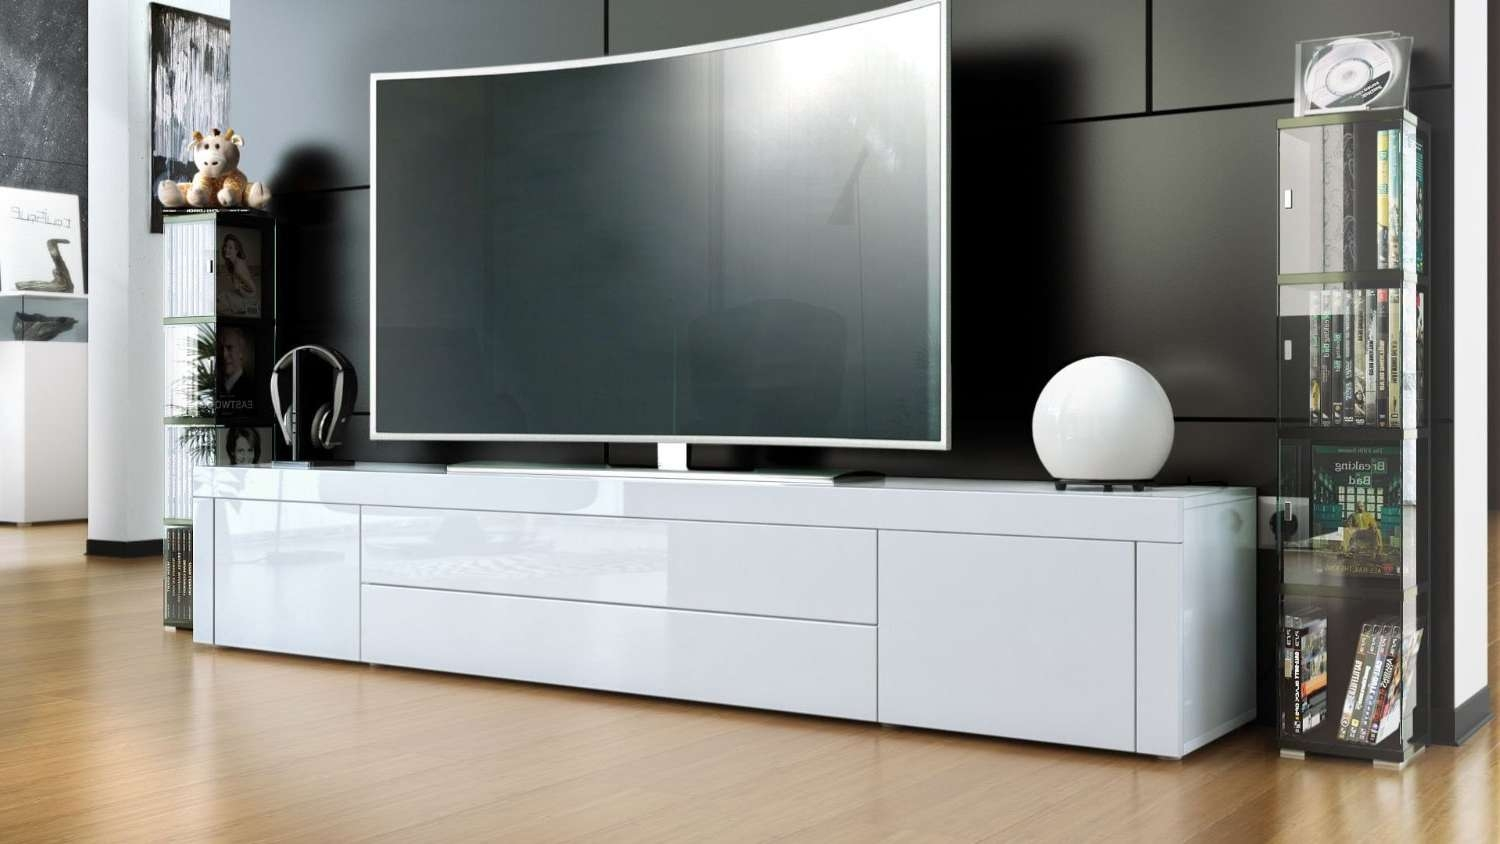 Best Tv Stands White Gloss 49 About Remodel House Interiors With Inside White High Gloss Tv Stands Unit Cabinet (View 1 of 15)